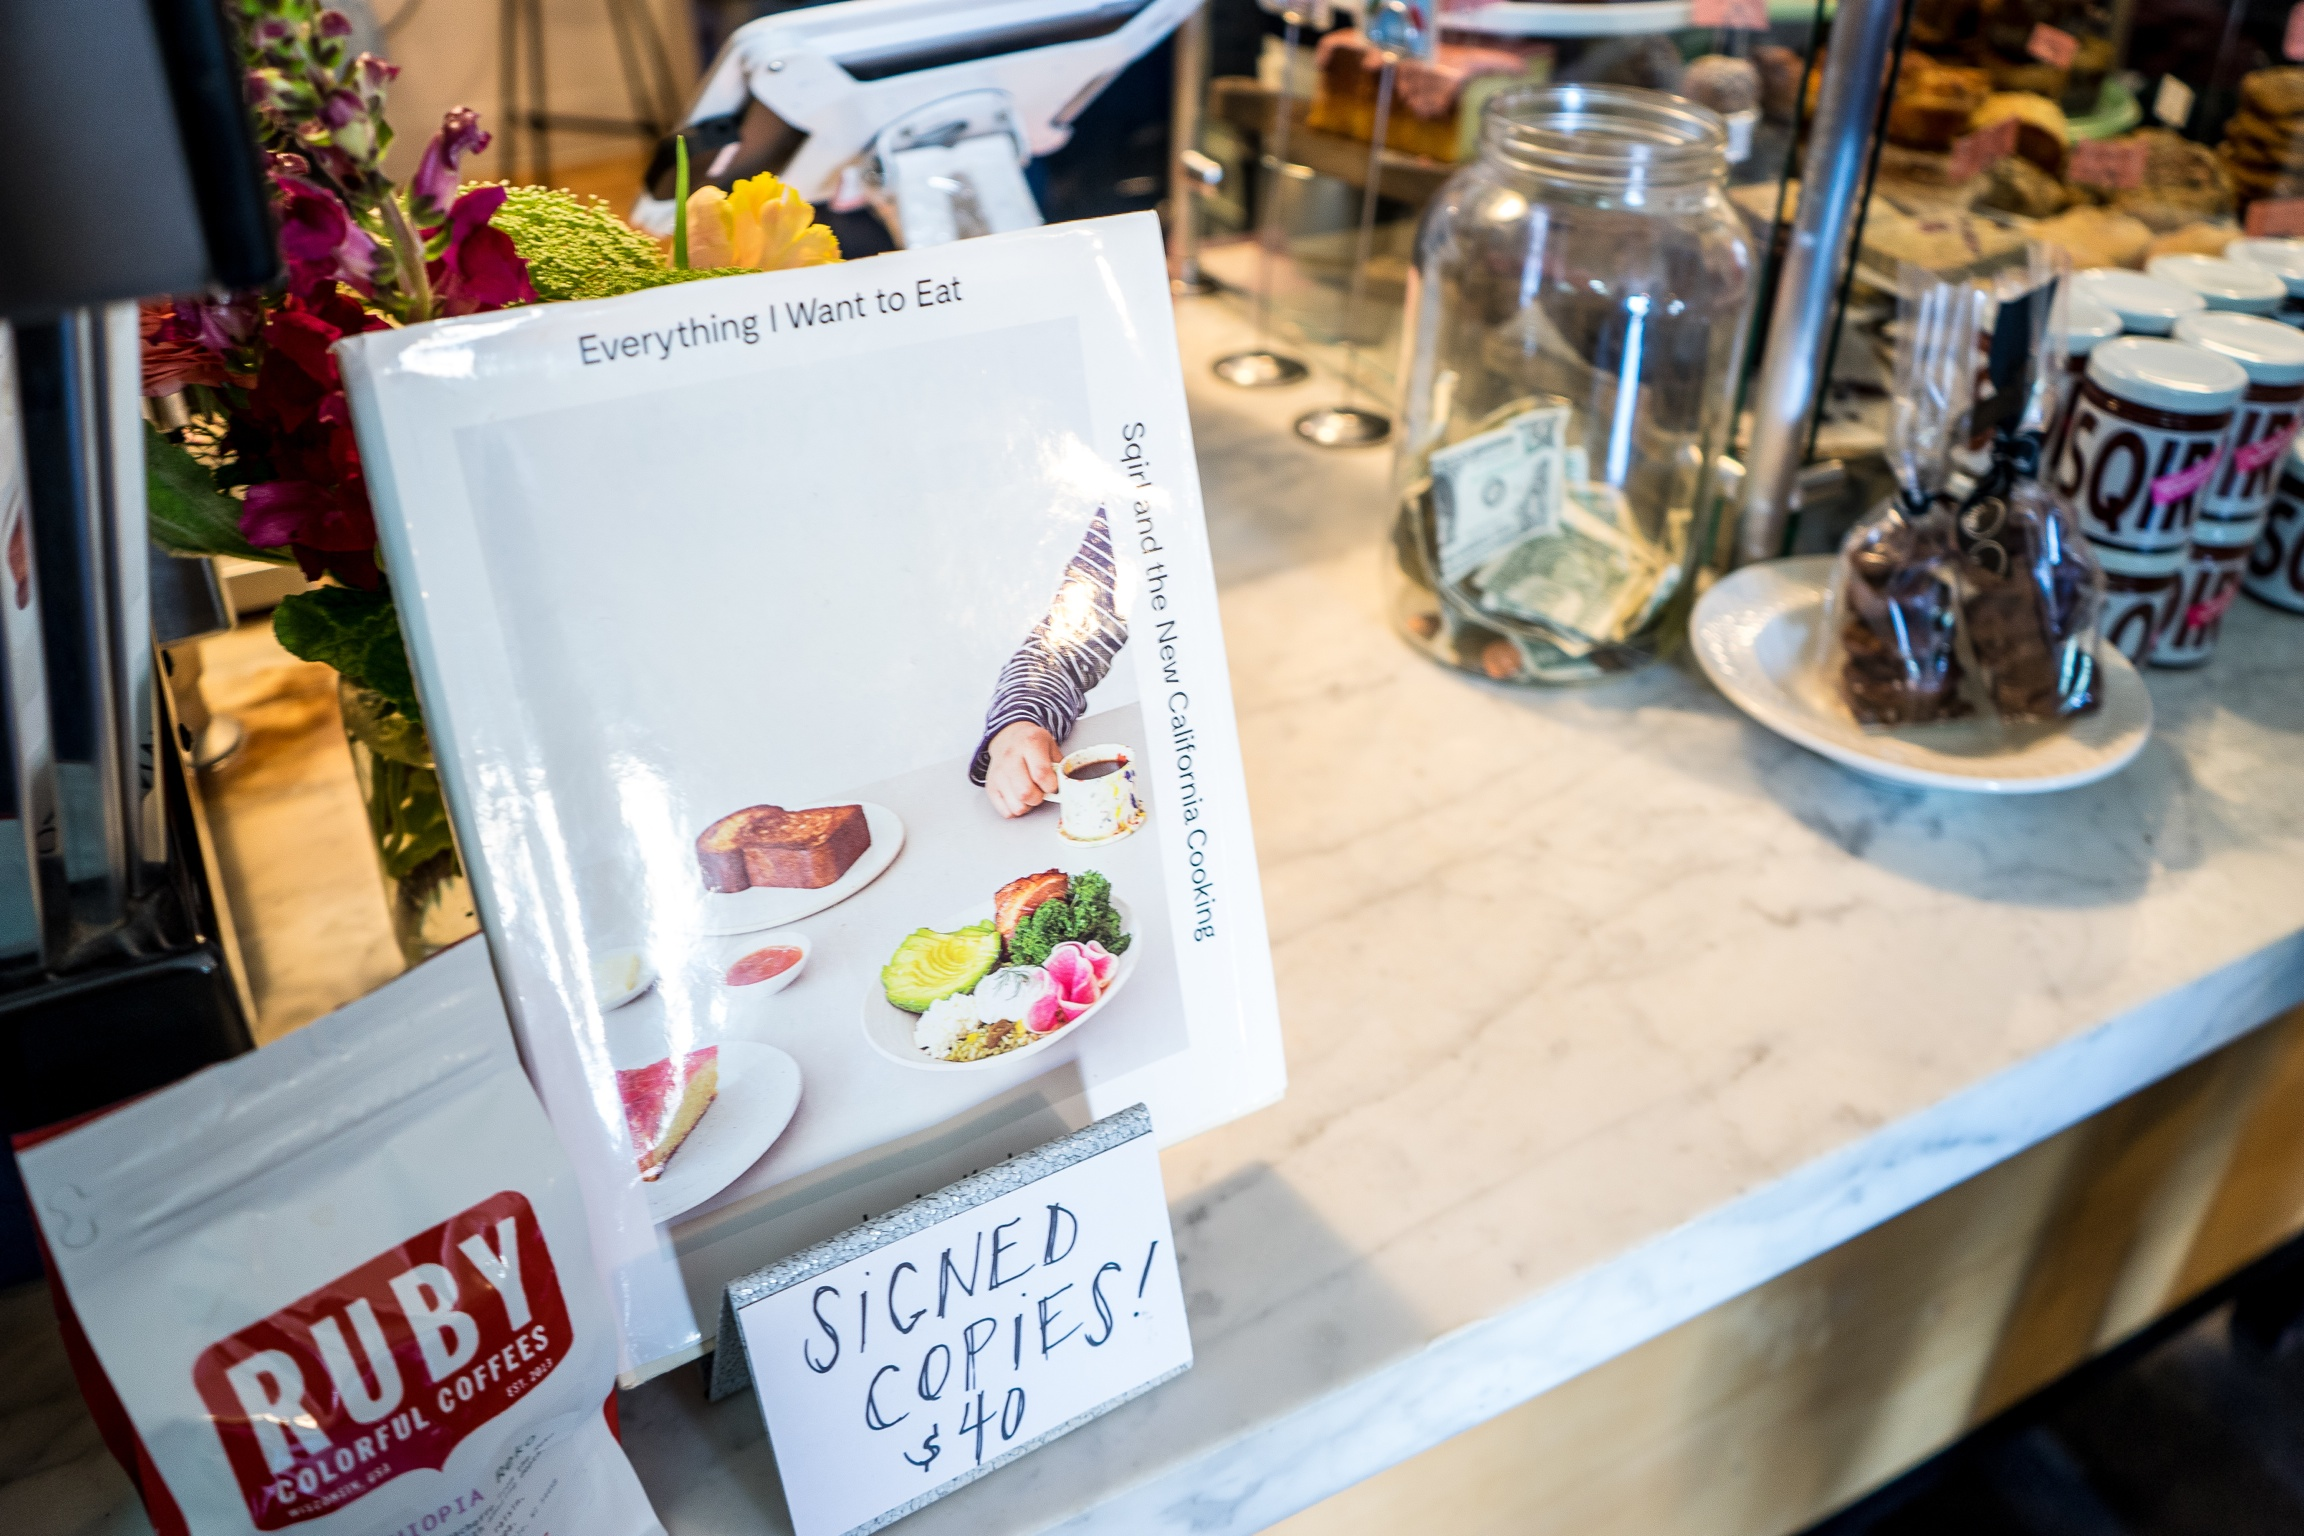 Koslow's new cookbook, Everything I Want to Eat, for sale at Sqirl, Silver Lake, CA